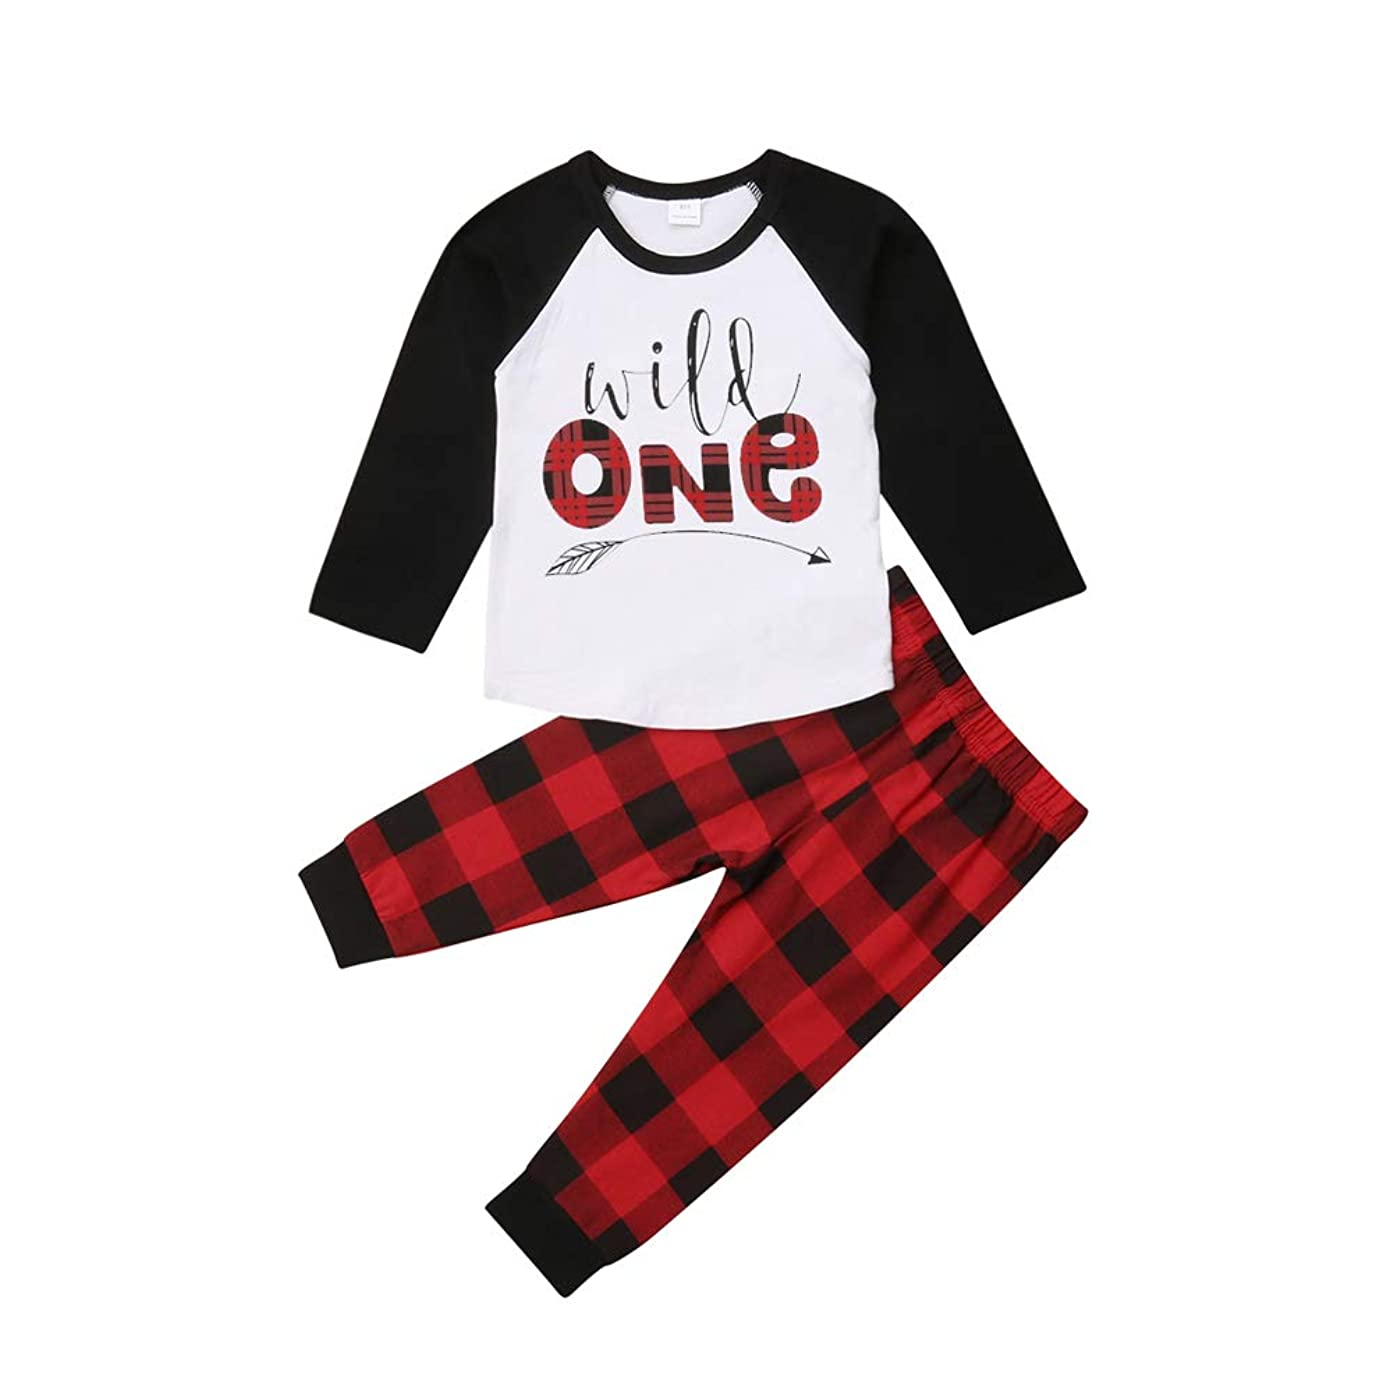 Christmas Infant Baby Boy Clothes Long Sleeve Letter Print Raglan Shirt+Plaid Pants 2Pcs Outfit Set